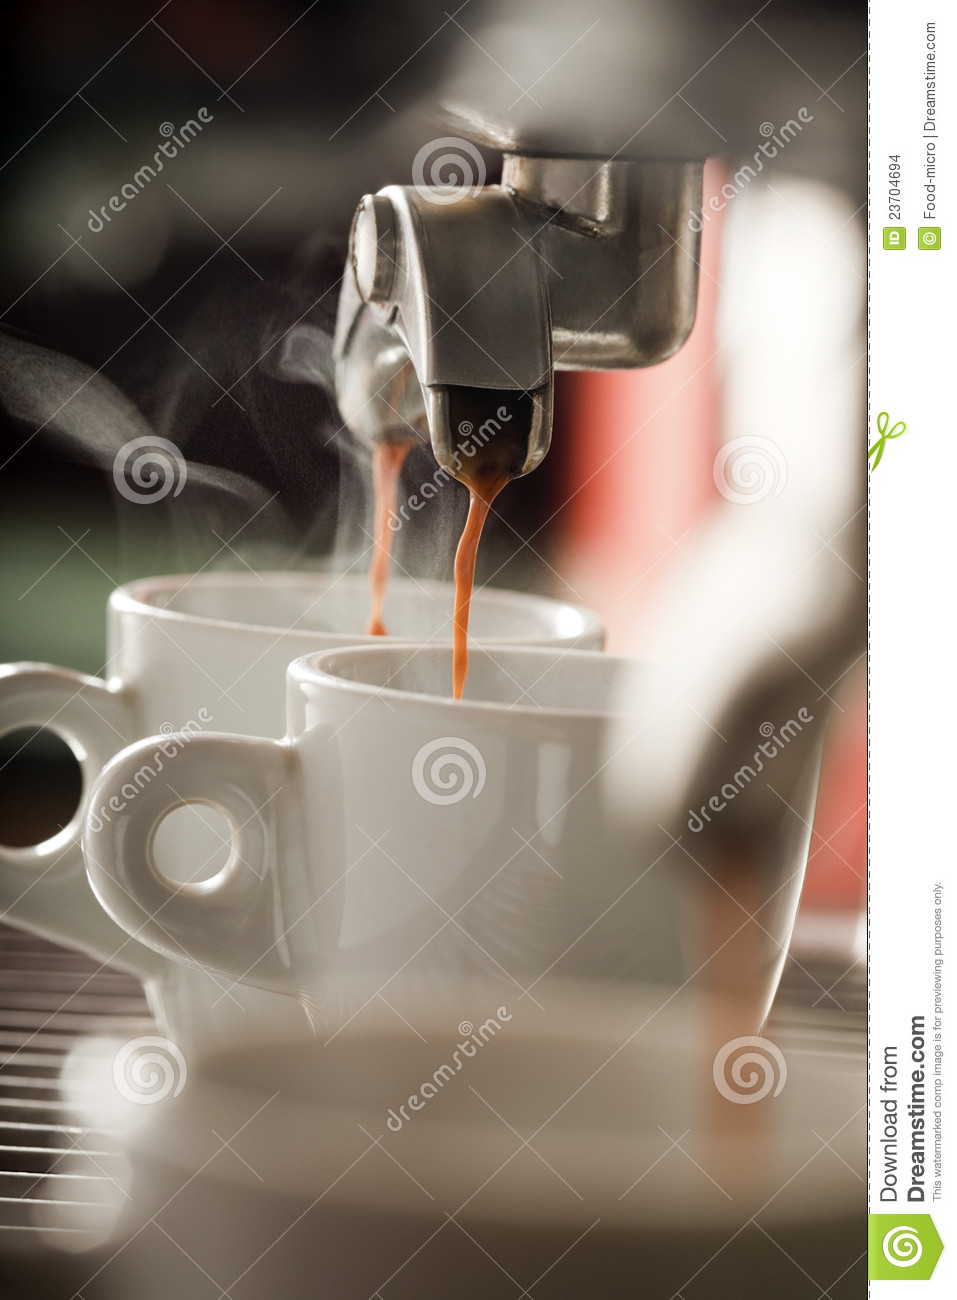 Expresso machine pouring two coffees